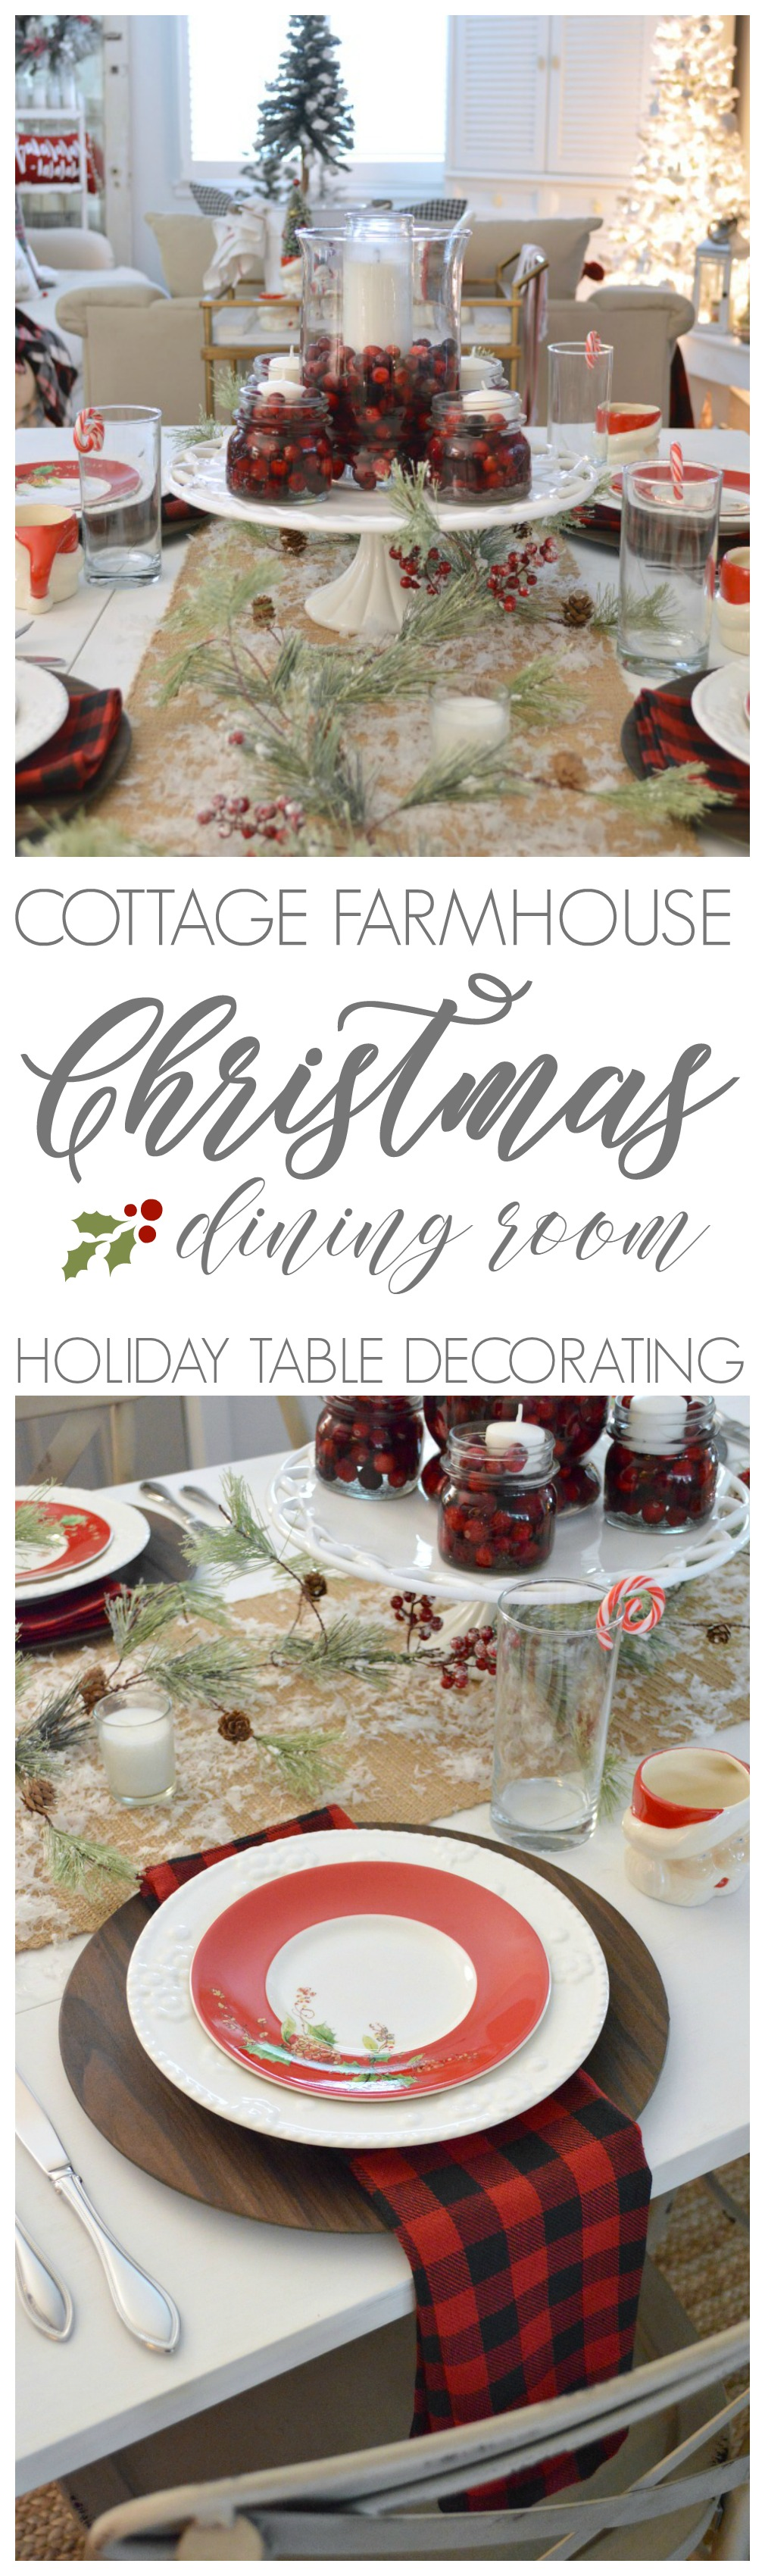 Cottage Farmhouse Christmas Dining Room, red black, white buffalo check rustic traditional farm table with cranberry floating candle centerpiece.